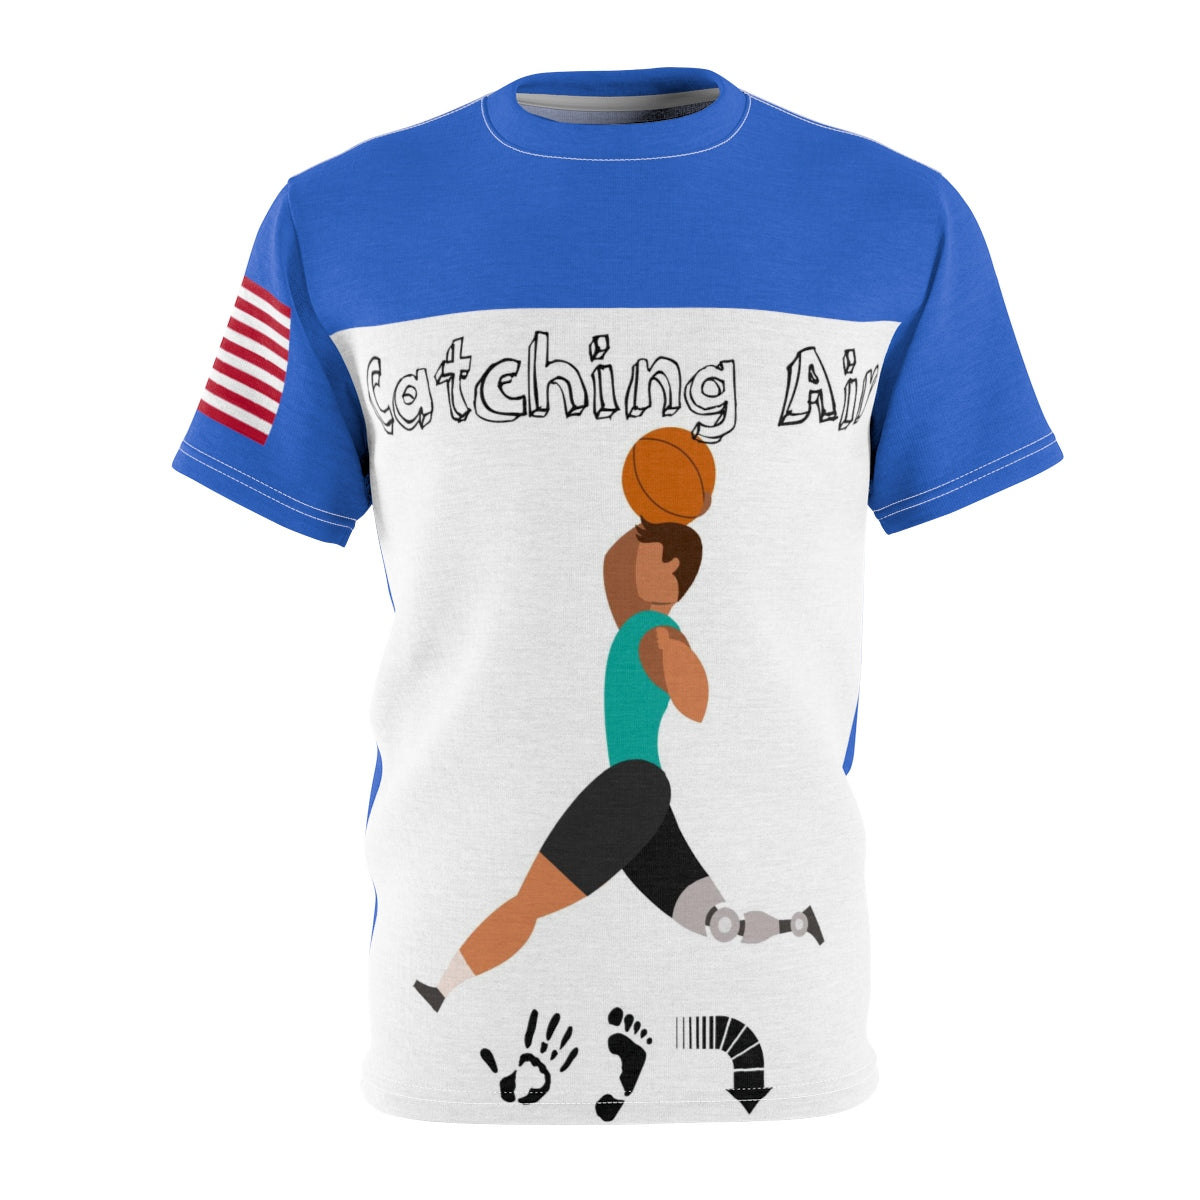 Five Toes Down Catching Air Unisex Cut & Sew Tee